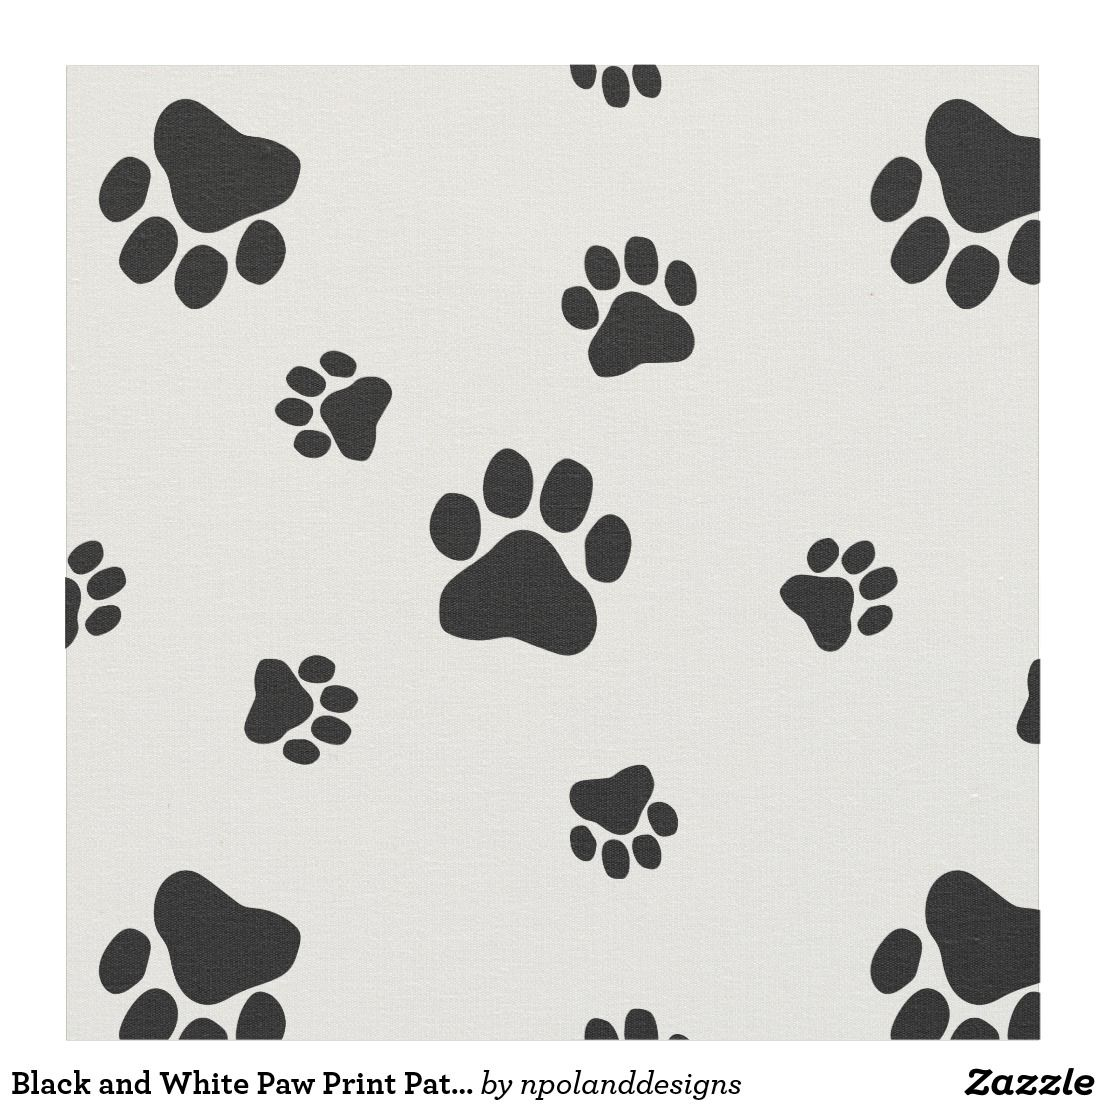 Black and White Paw Print Pattern Fabric v2 Paw print